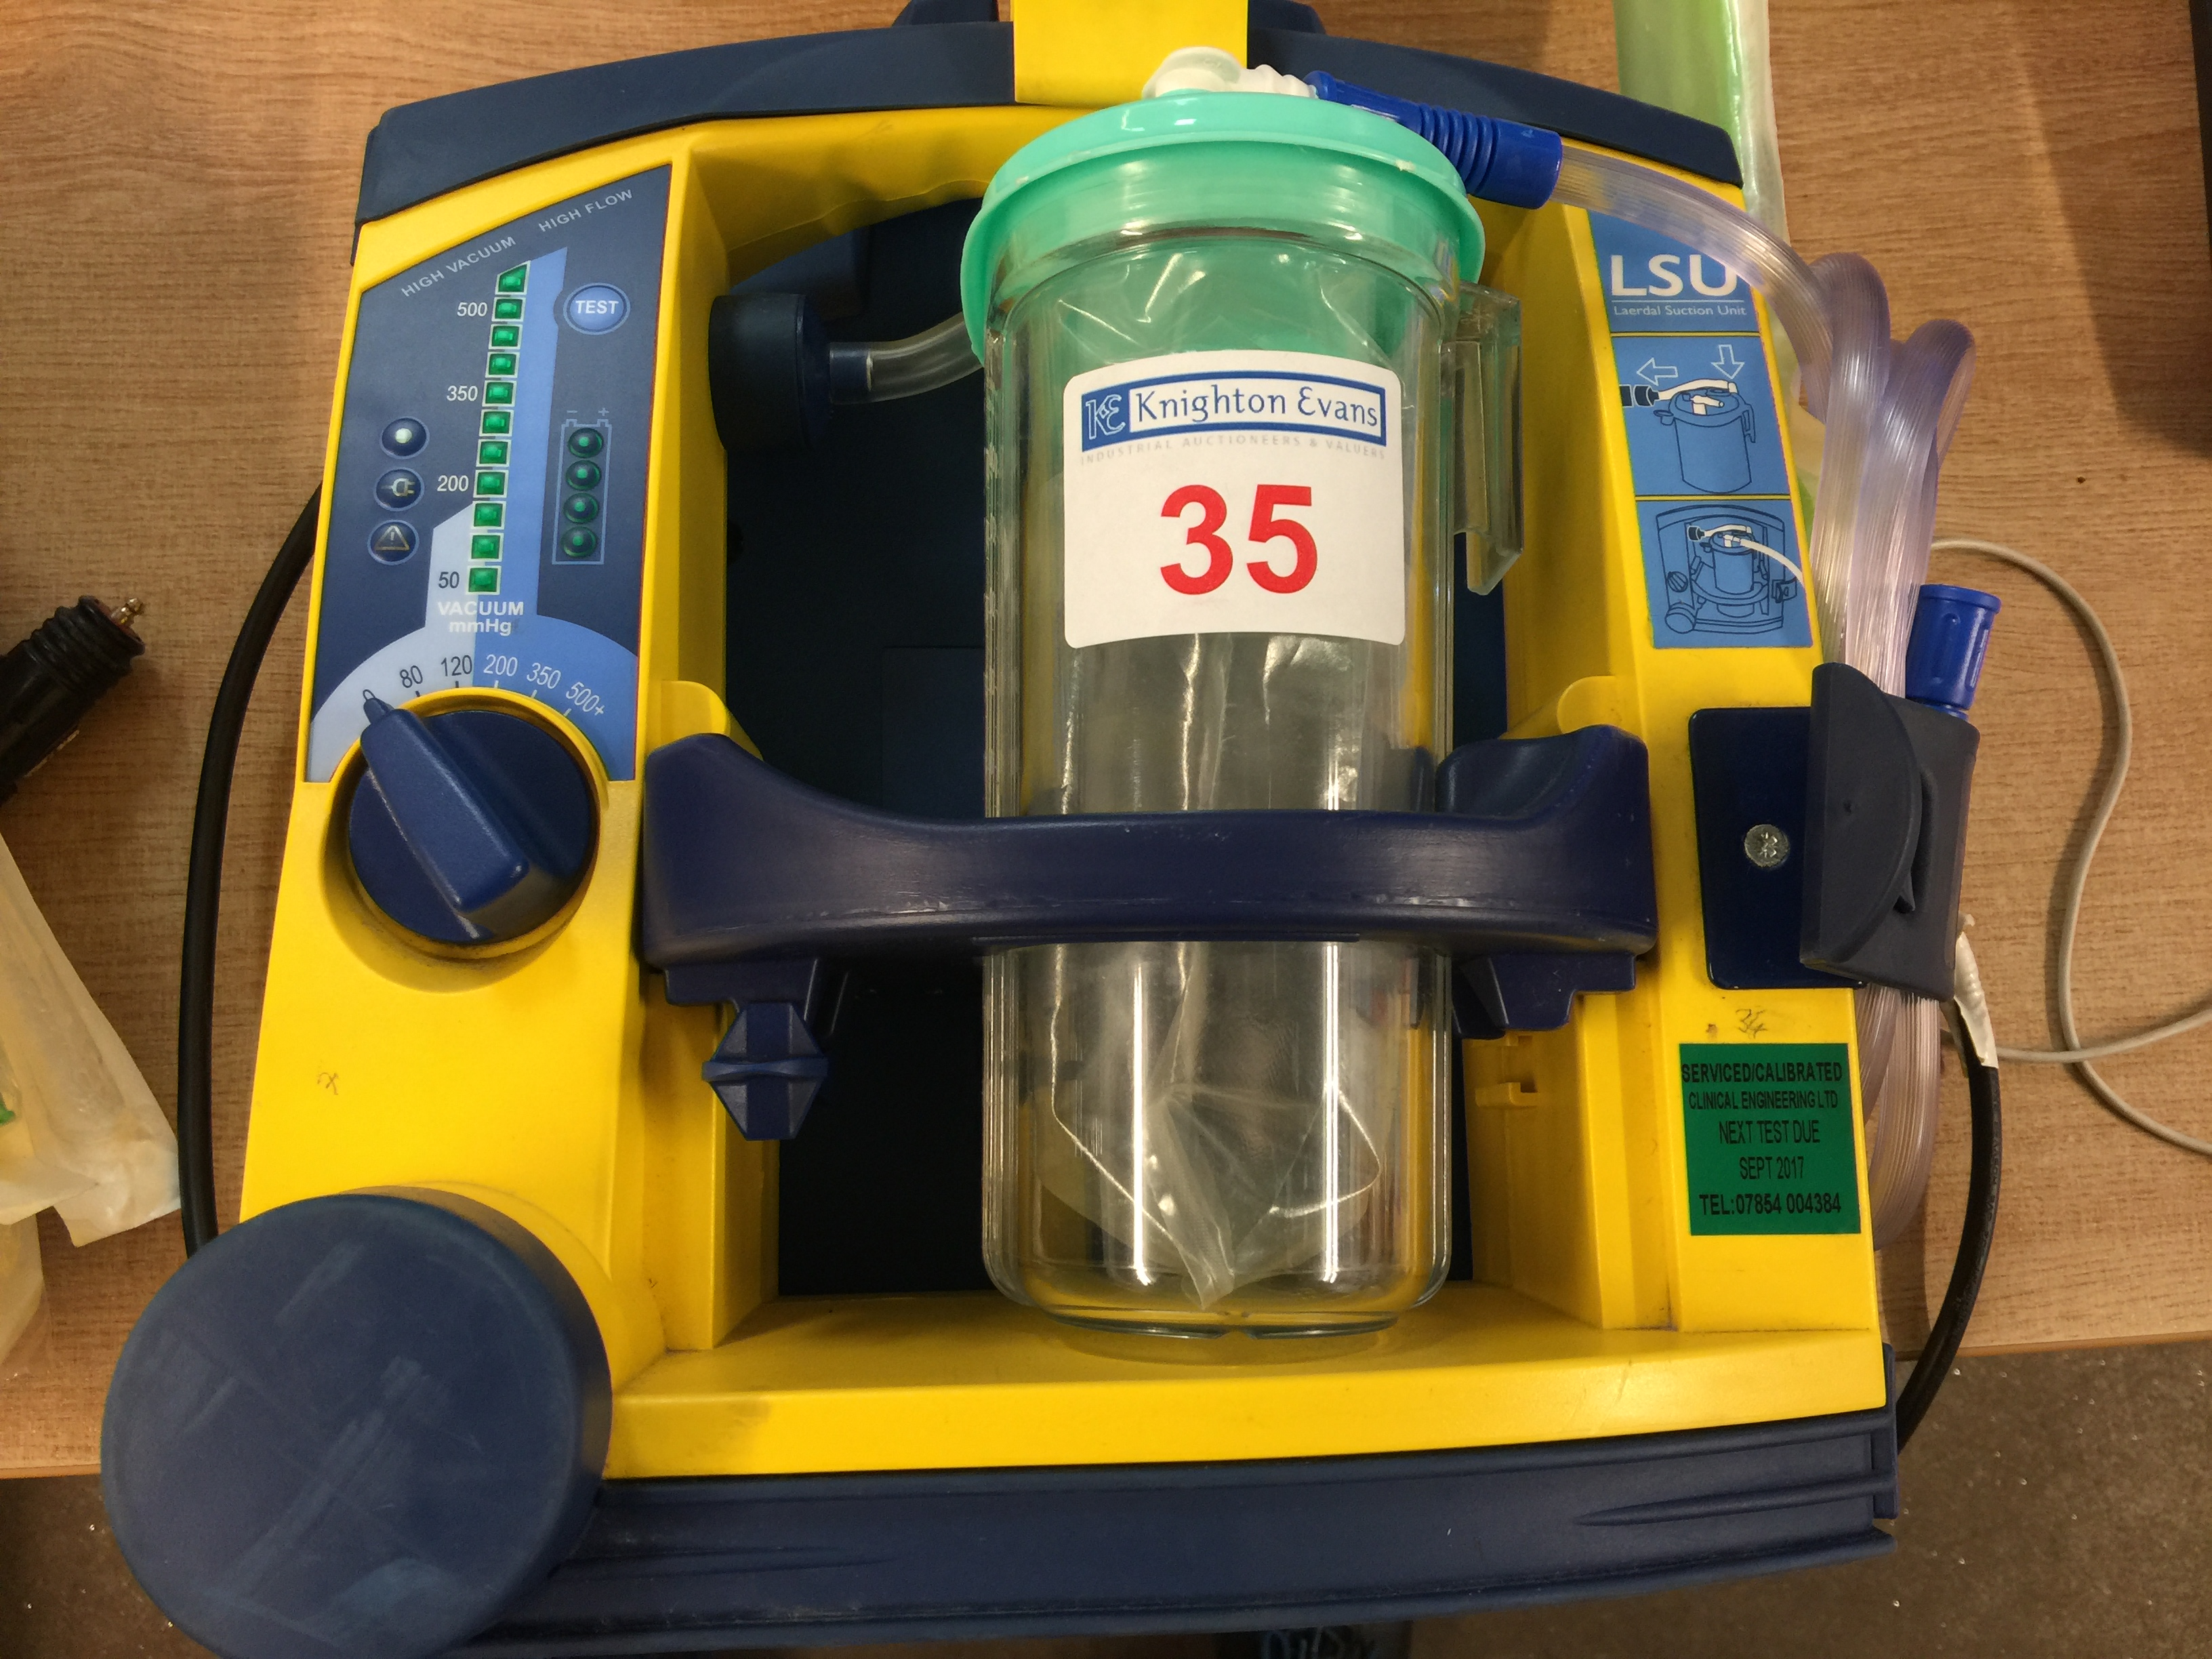 Lot 35 - Laerdal LSU portable suction unit with mounting plate and 12v charger, test due September 2017